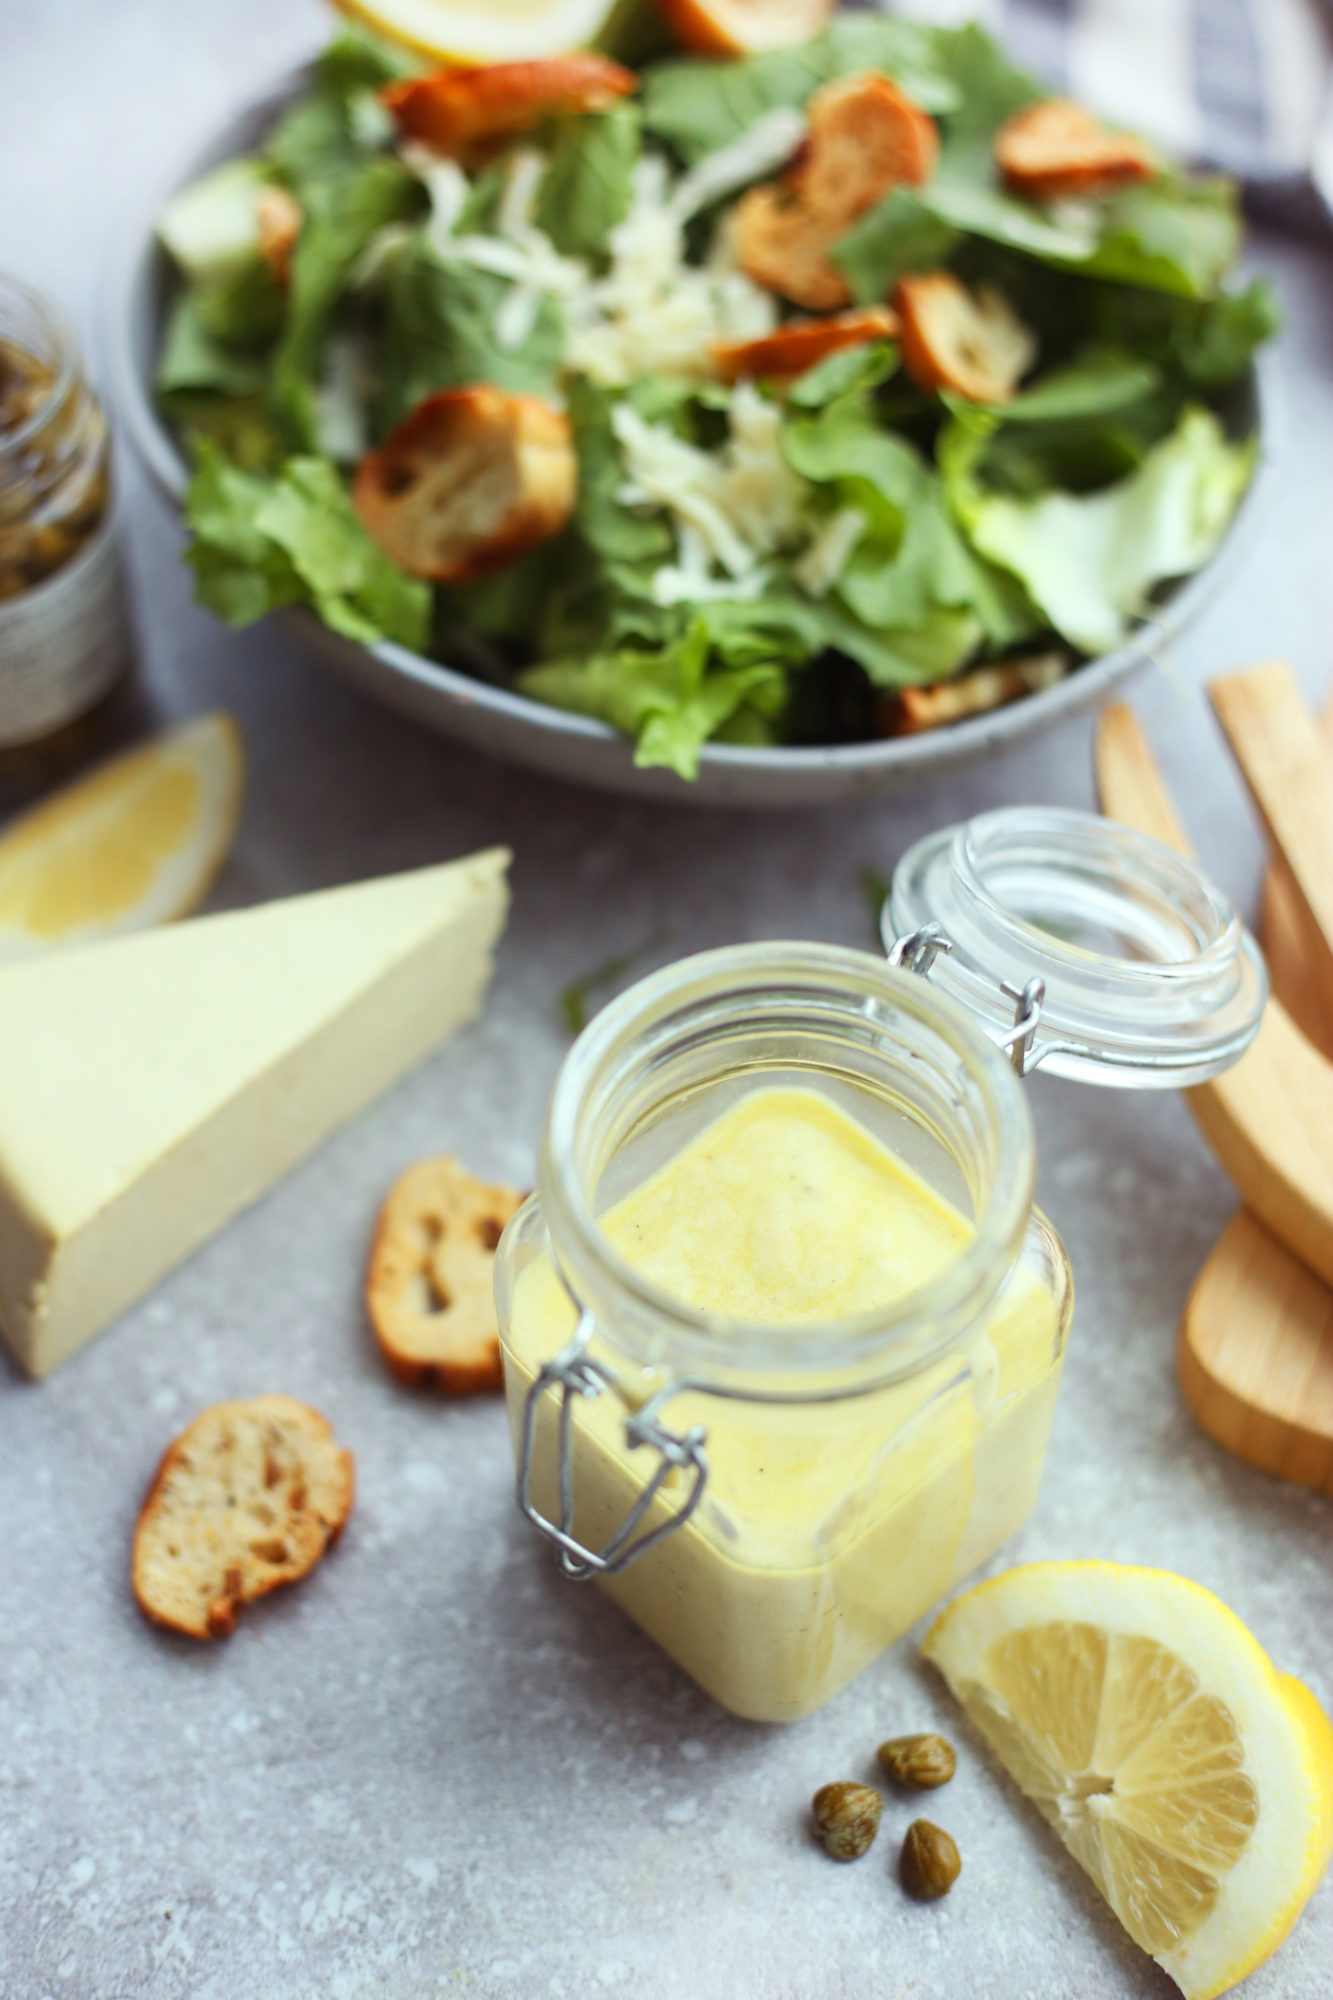 Homemade Caesar dressing